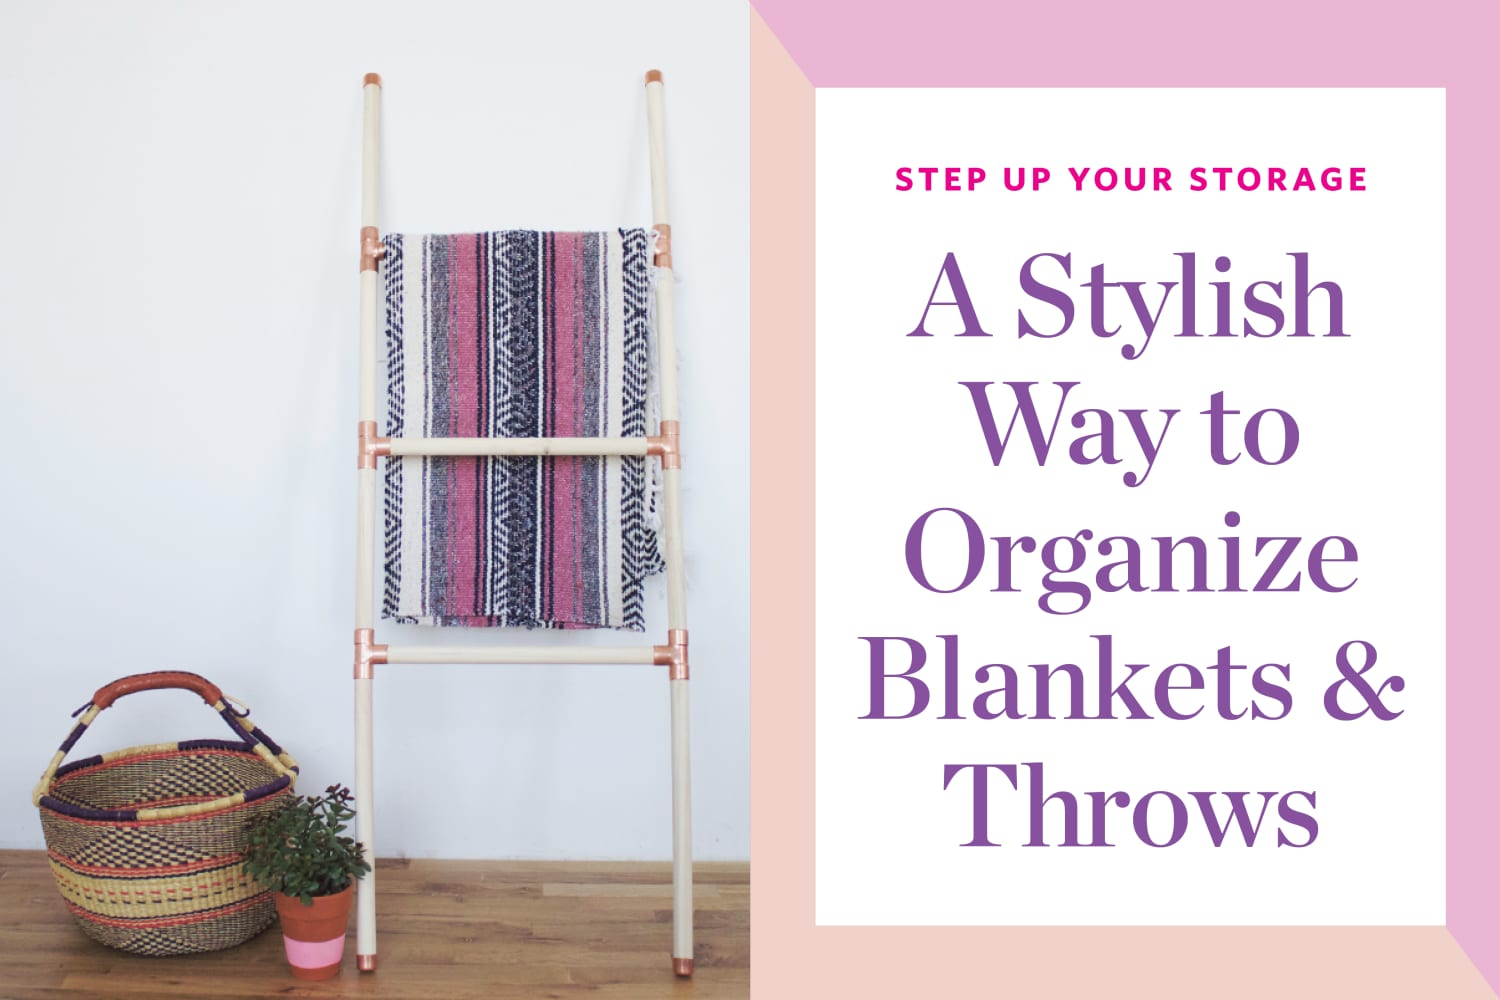 Step Up Your Storage: My Favorite Way to Organize Blankets & Throws (& More!)